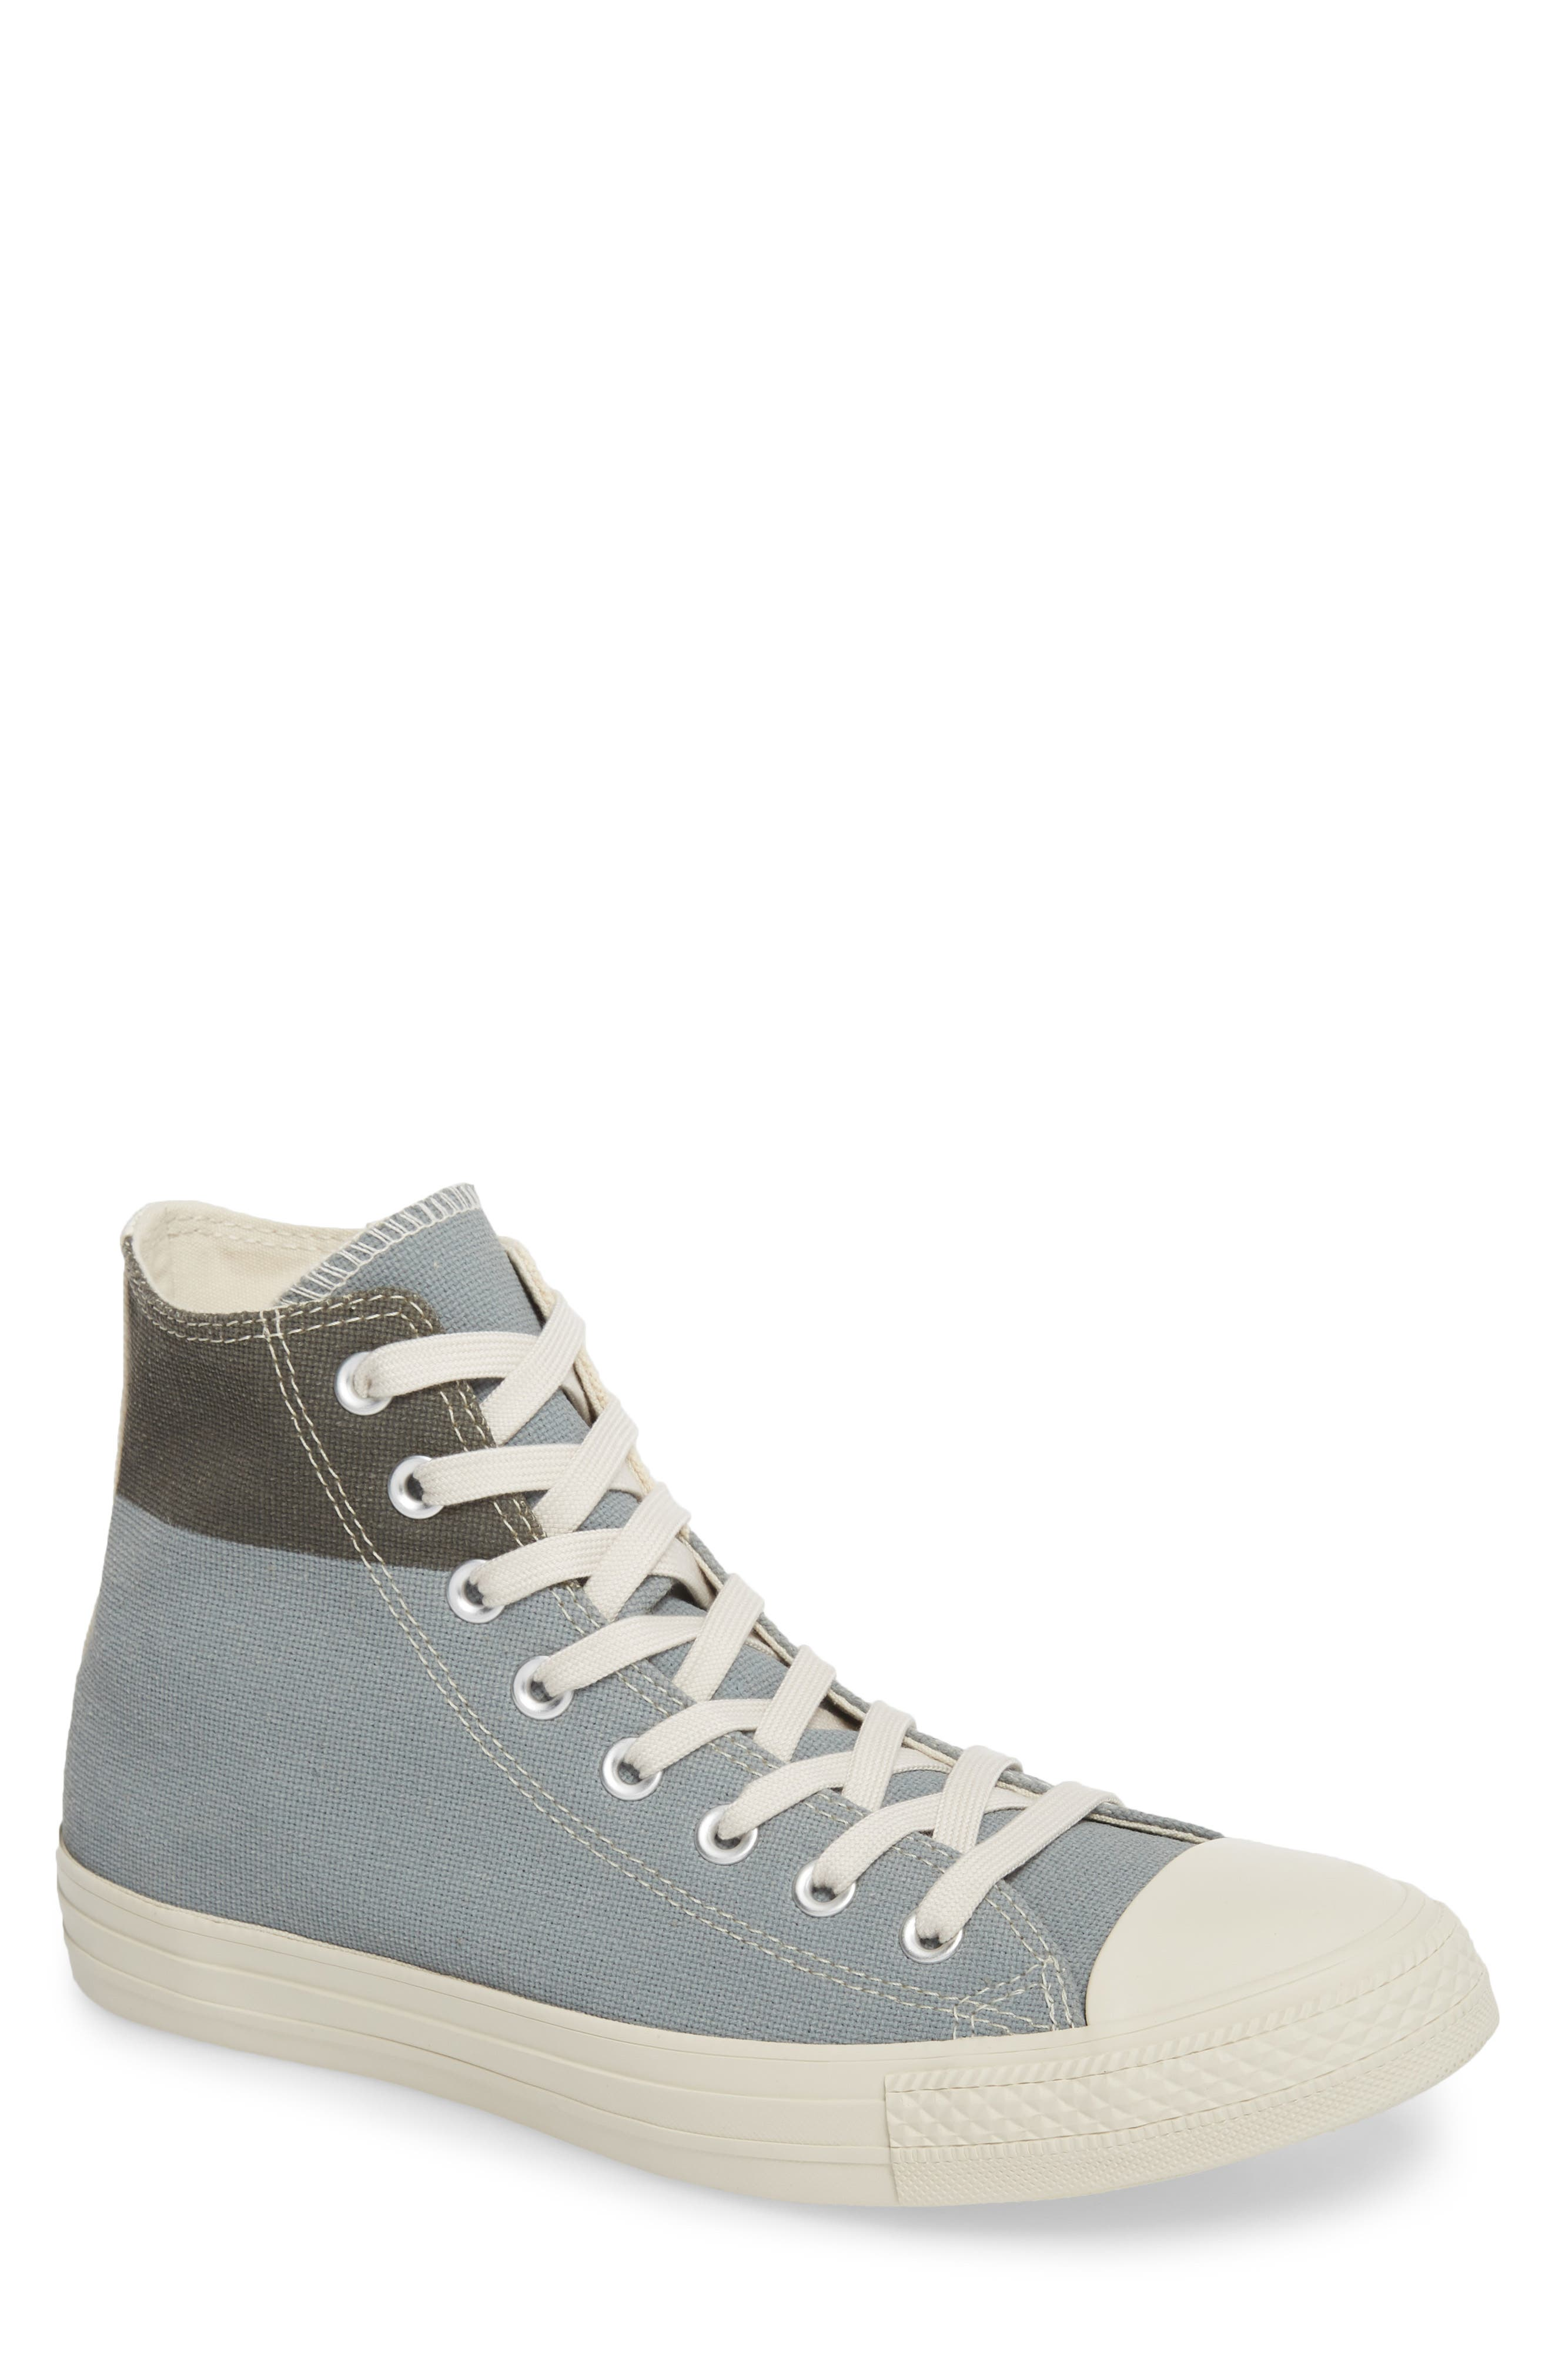 Chuck Taylor<sup>®</sup> All Star<sup>®</sup> Jute Americana High Top Sneaker,                         Main,                         color, 020